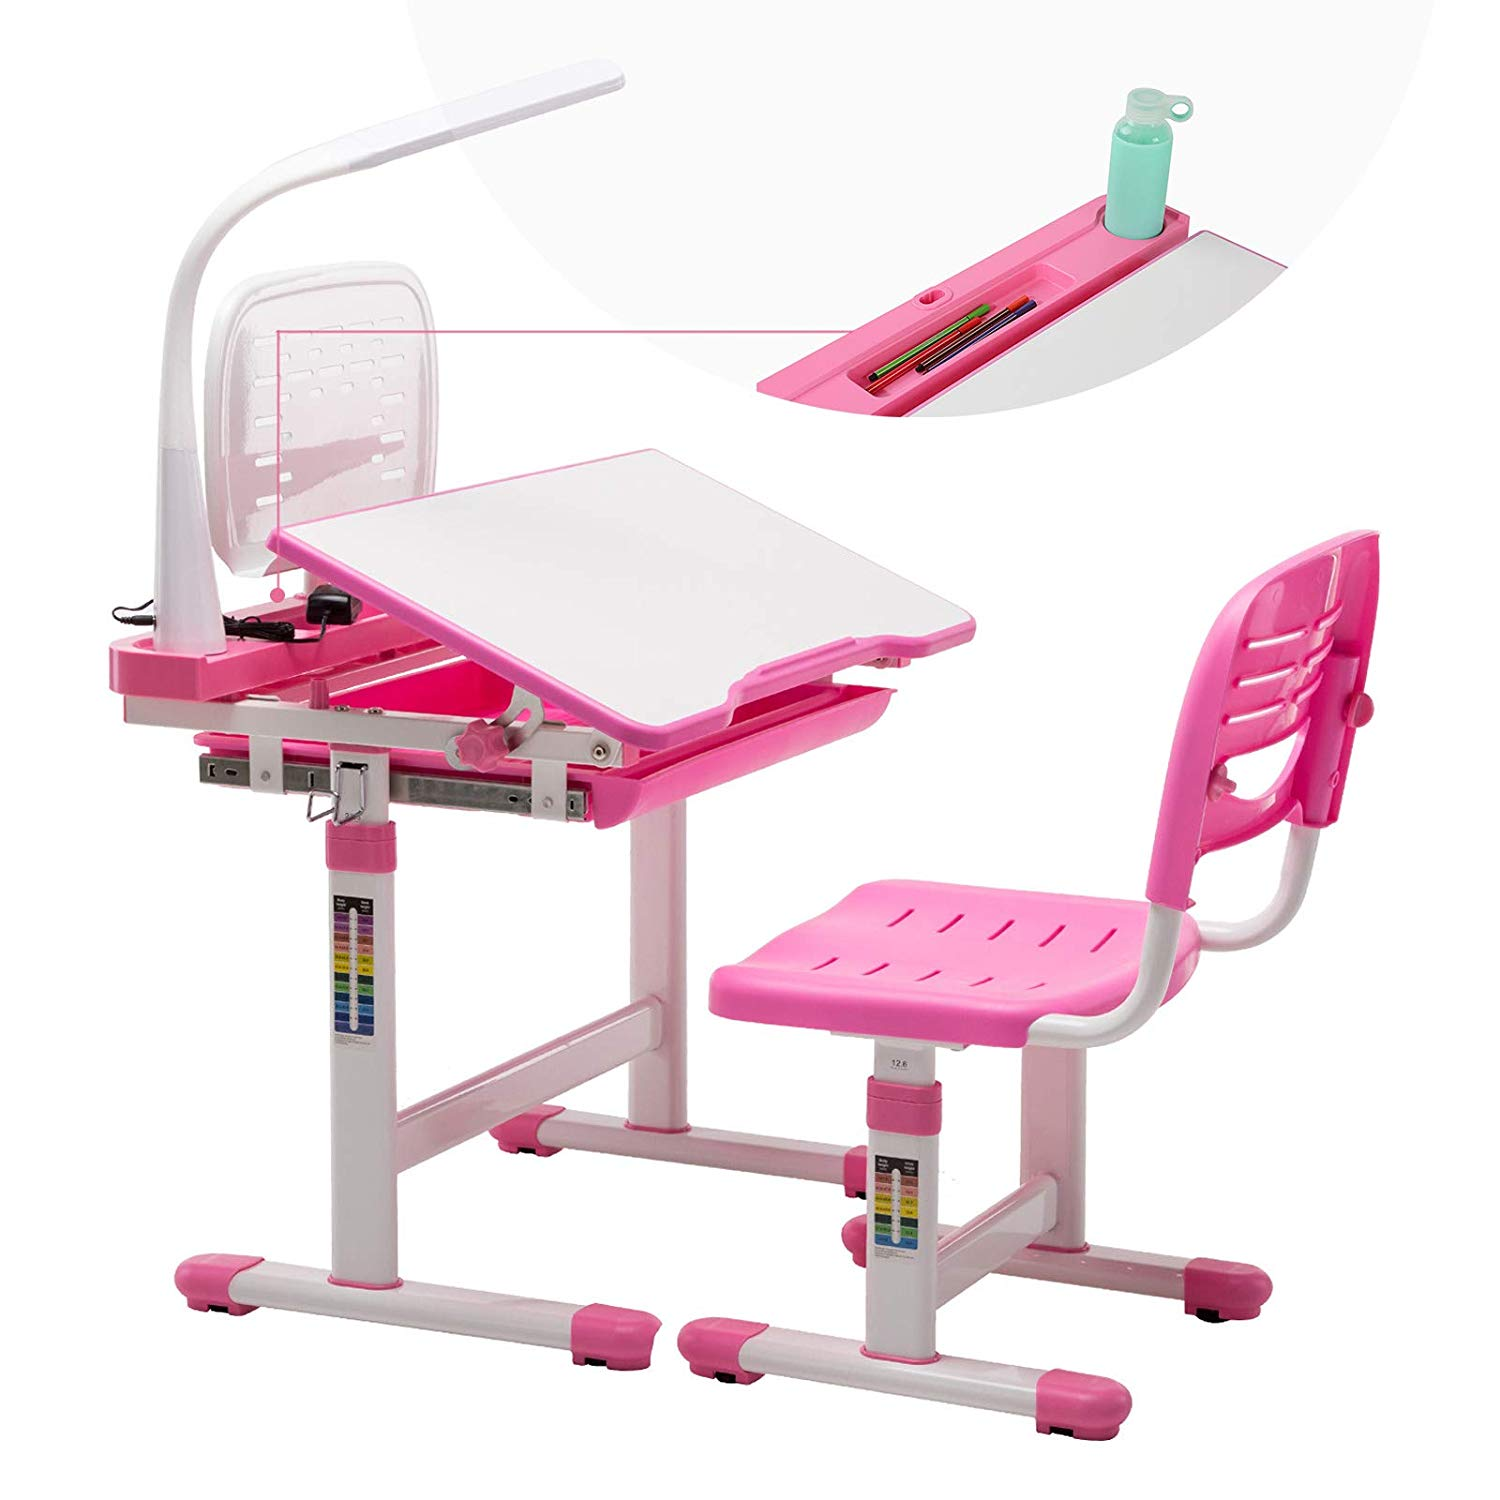 Mecor Kids Desk and Chair Set, Children's Sturdy Table Height Adjustable, Student School Desks with Lamp,Pencil Case,Bookstand,Pink